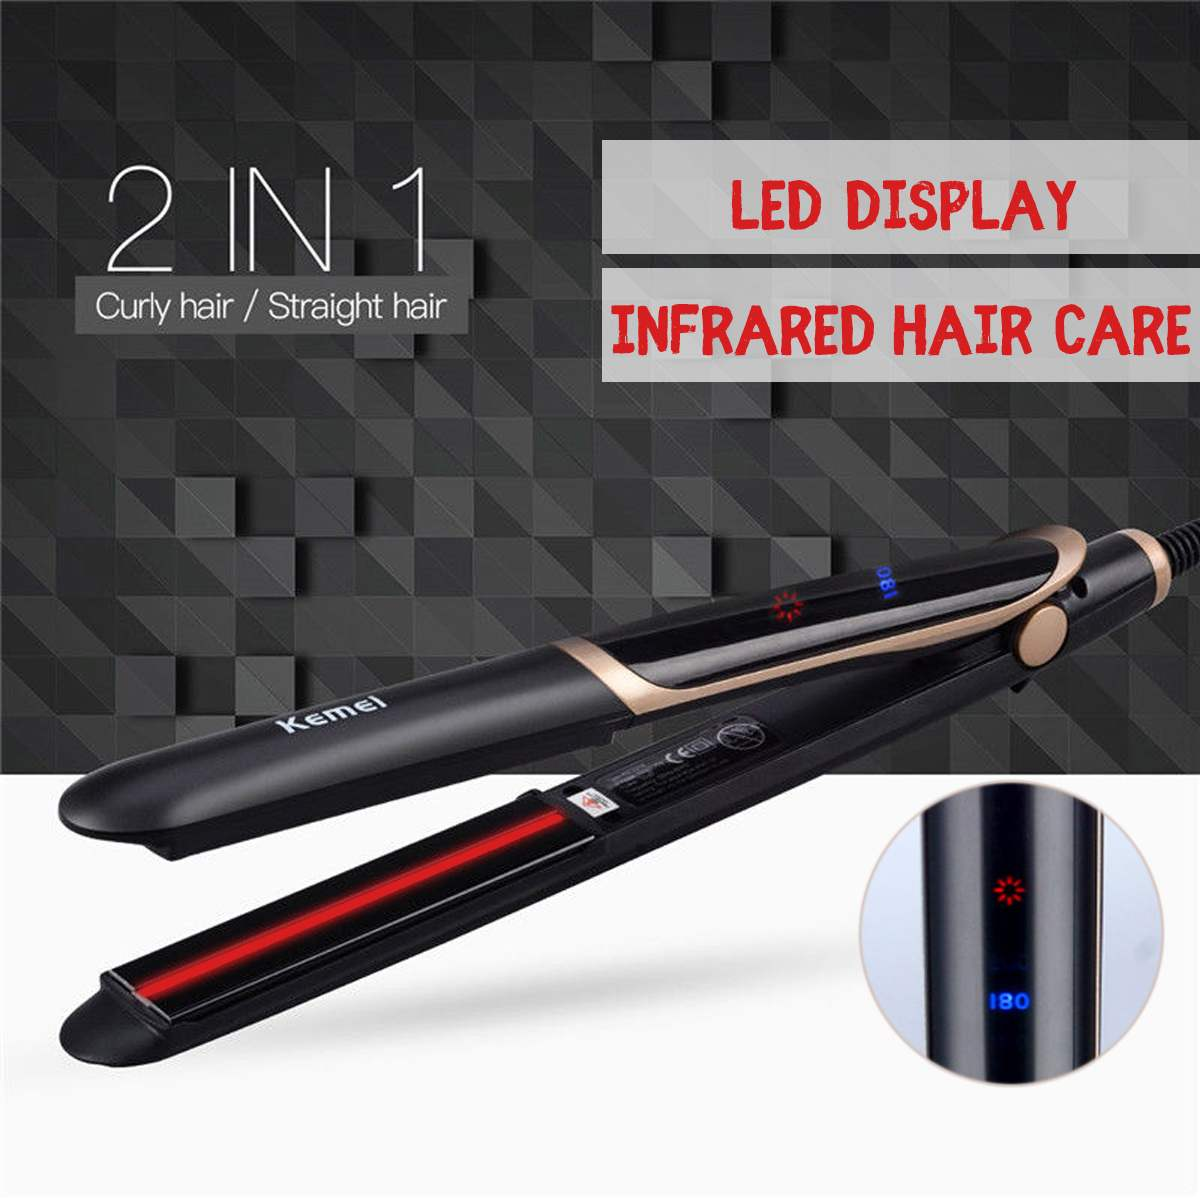 Kemei LCD Display Professional Hair Straightener Curler Hair Flat Iron Infrared Hair Straighting Curling Iron Corrugation